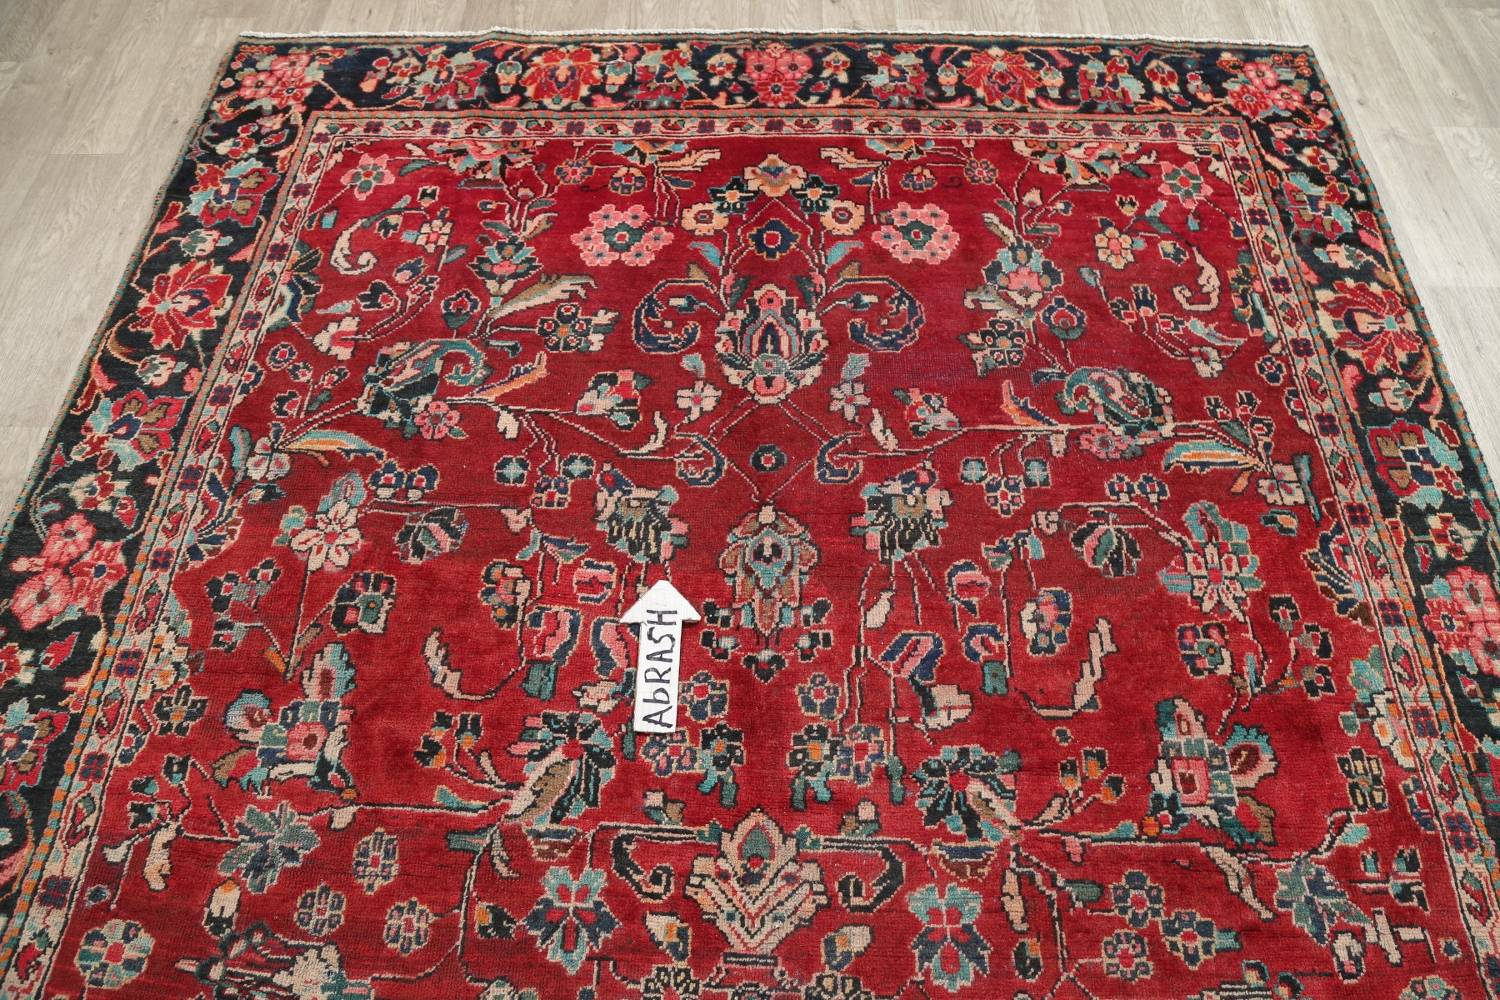 Antique All Over Floral Red Mahal Persian Hand Knotted